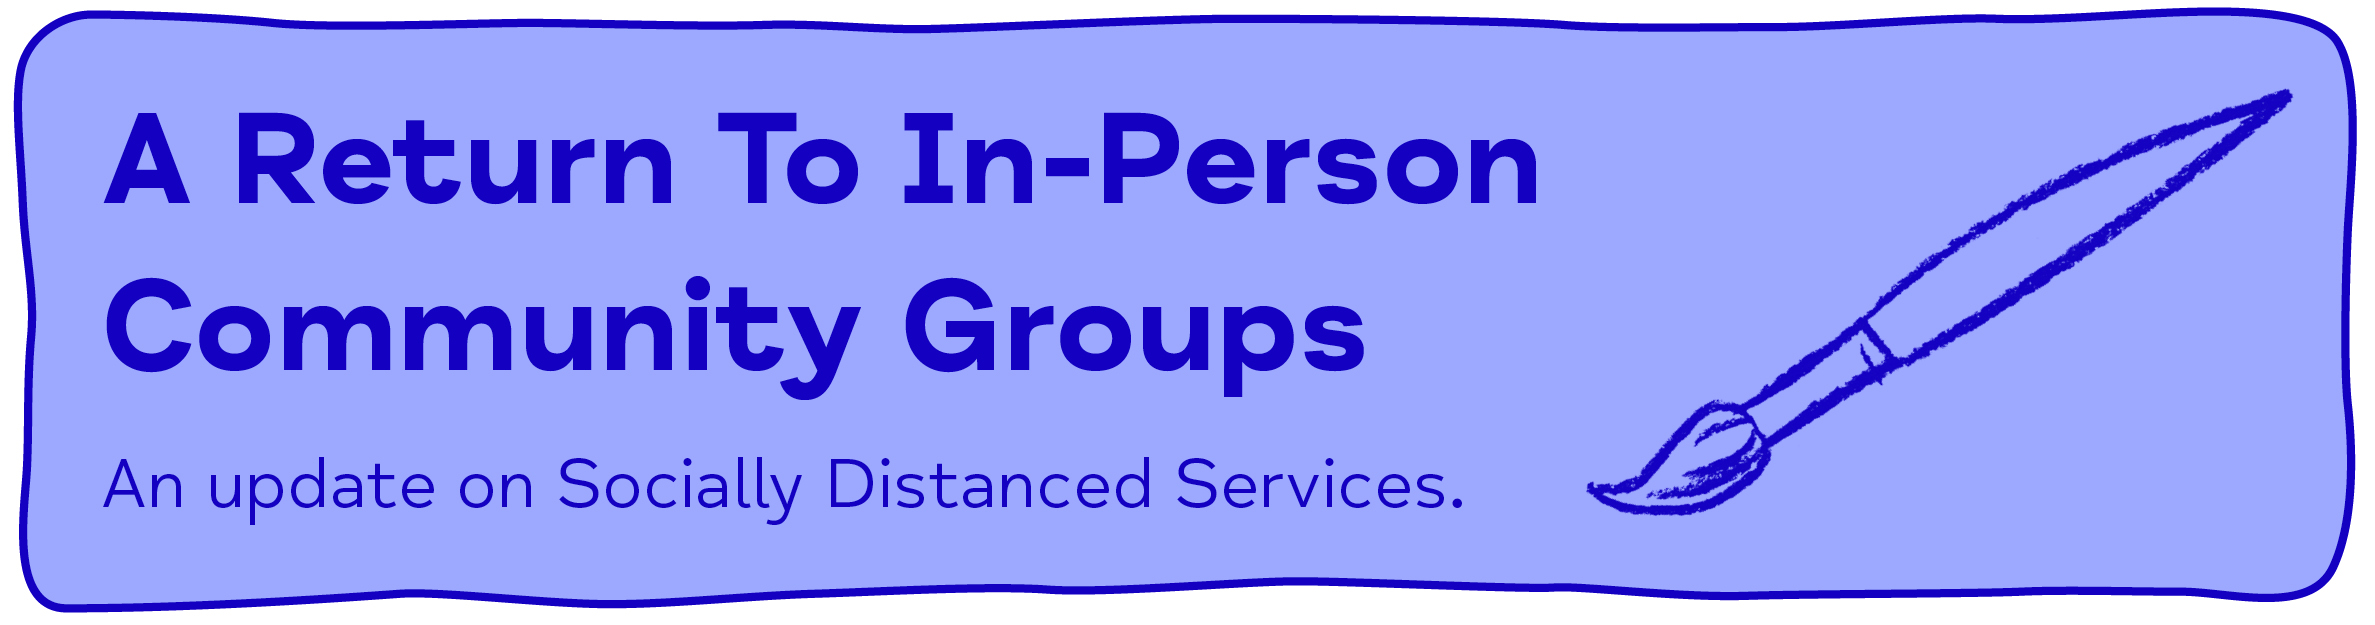 A Return To In-Person Community Groups An update on Socially Distanced Services.